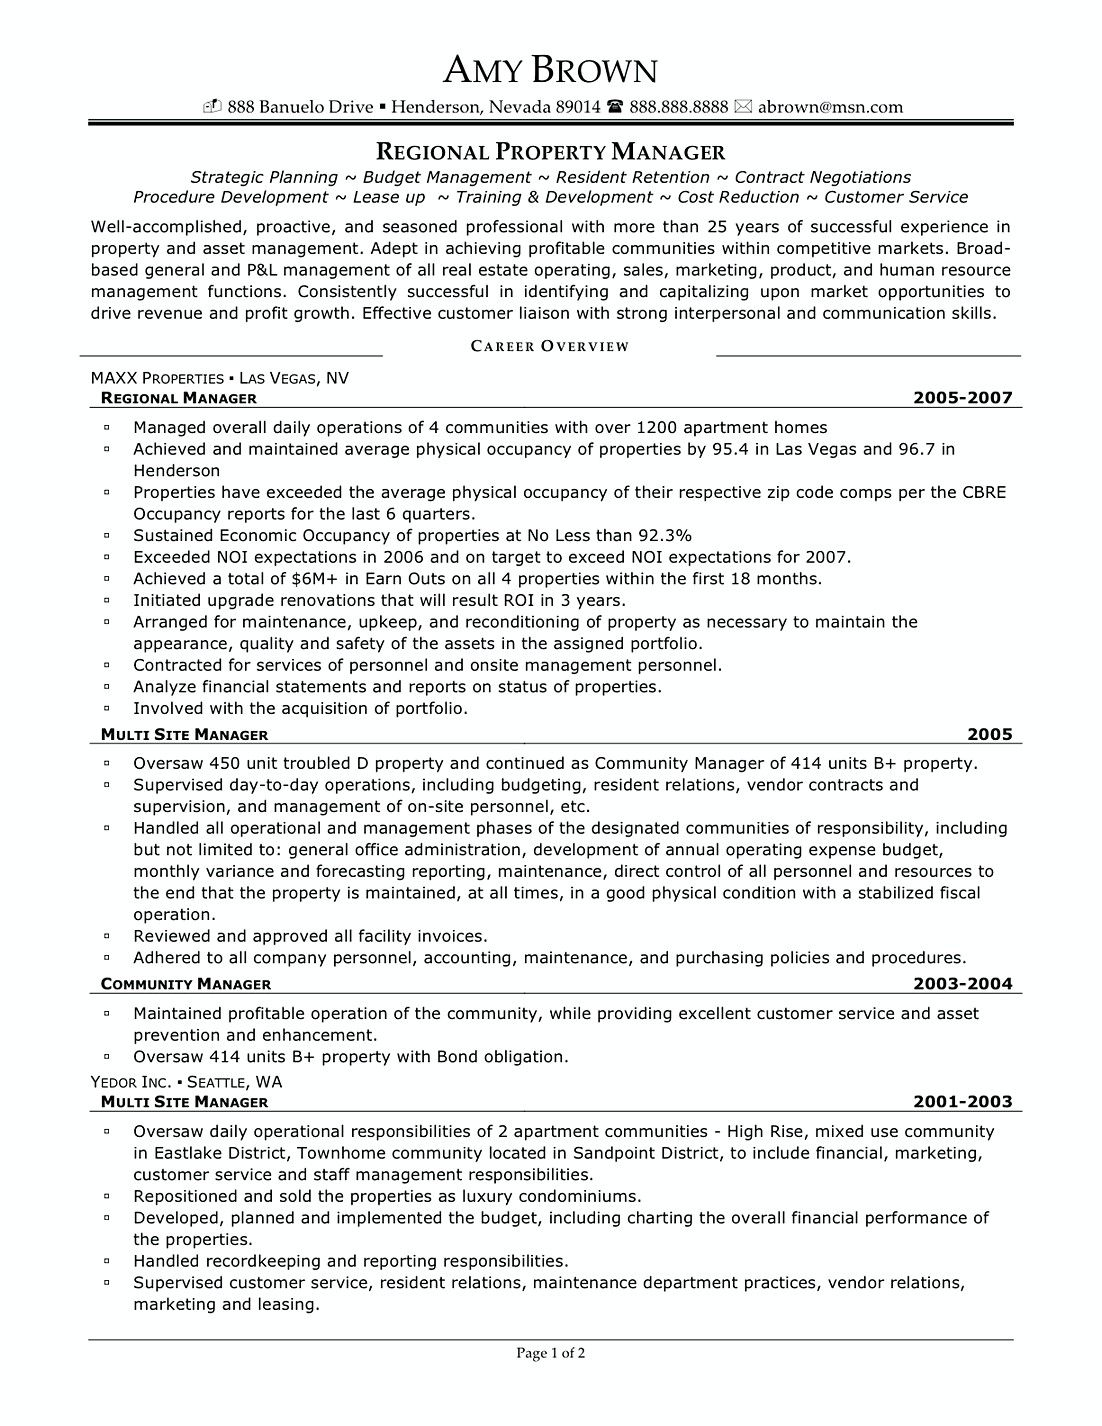 Regional Property Manager Resume Samples , Commercial Property Manager  Resume , Interested In Working In Property  Commercial Property Manager Resume